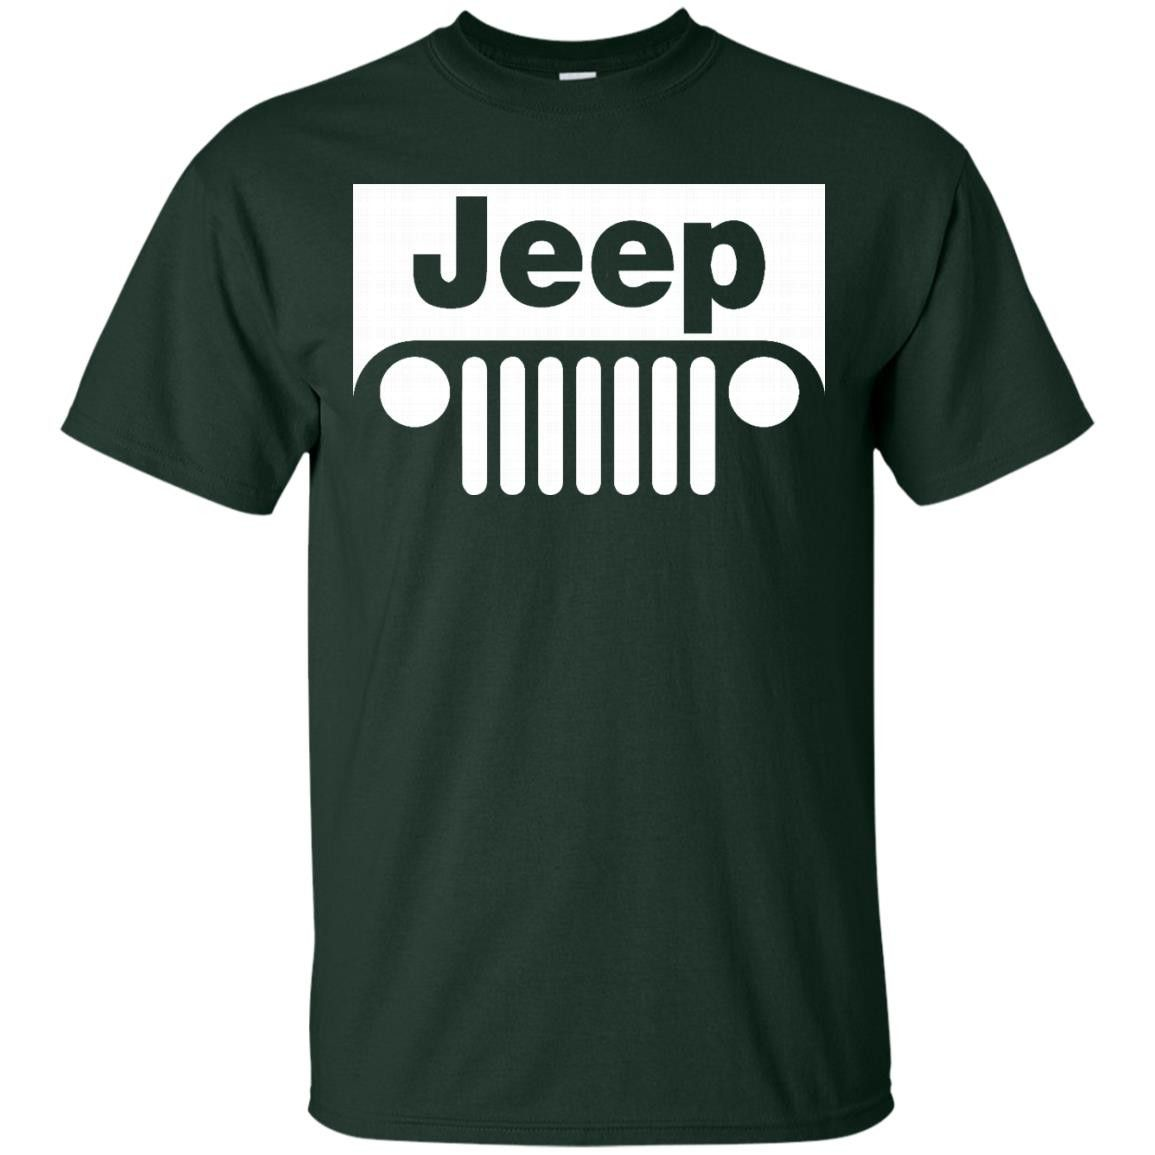 Jeep T Shirts Hoodies Sweatshirts Jeep Shirts Jeep Beer Beer Shirts